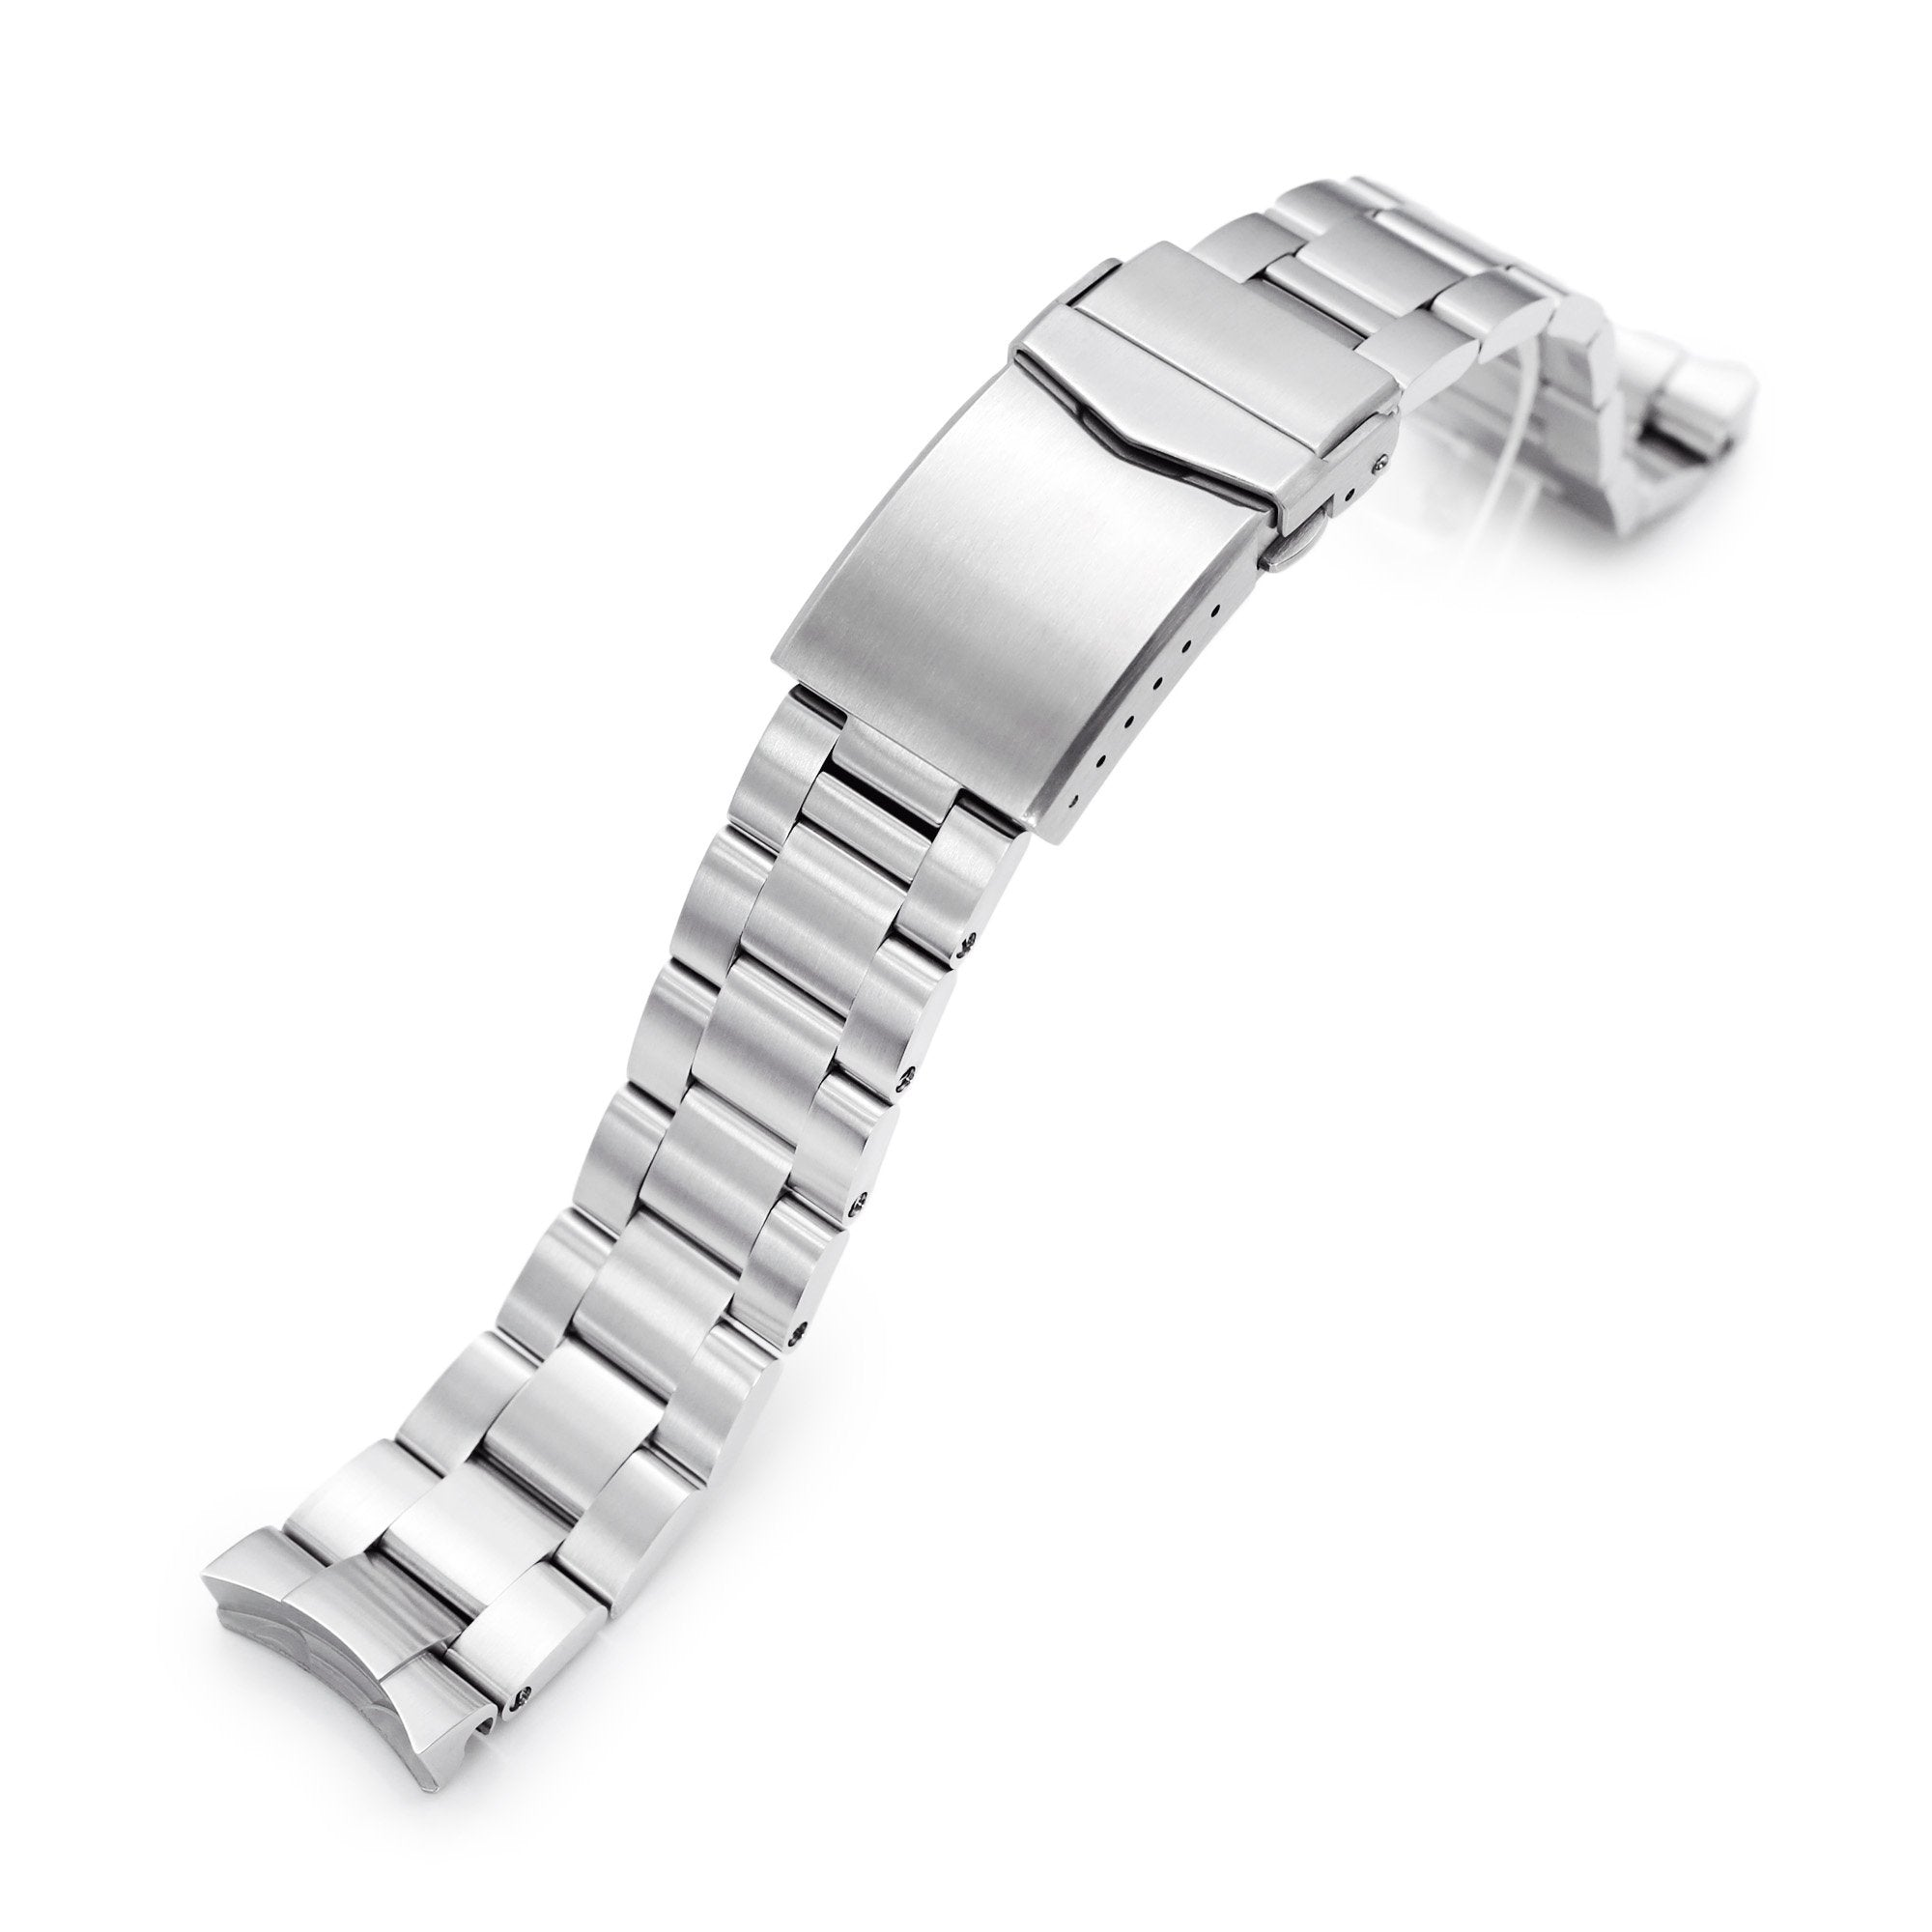 20mm Super-O Boyer 316L Stainless Steel Watch Band for New Seiko 5 40mm, Brushed V-Clasp Strapcode Watch Bands